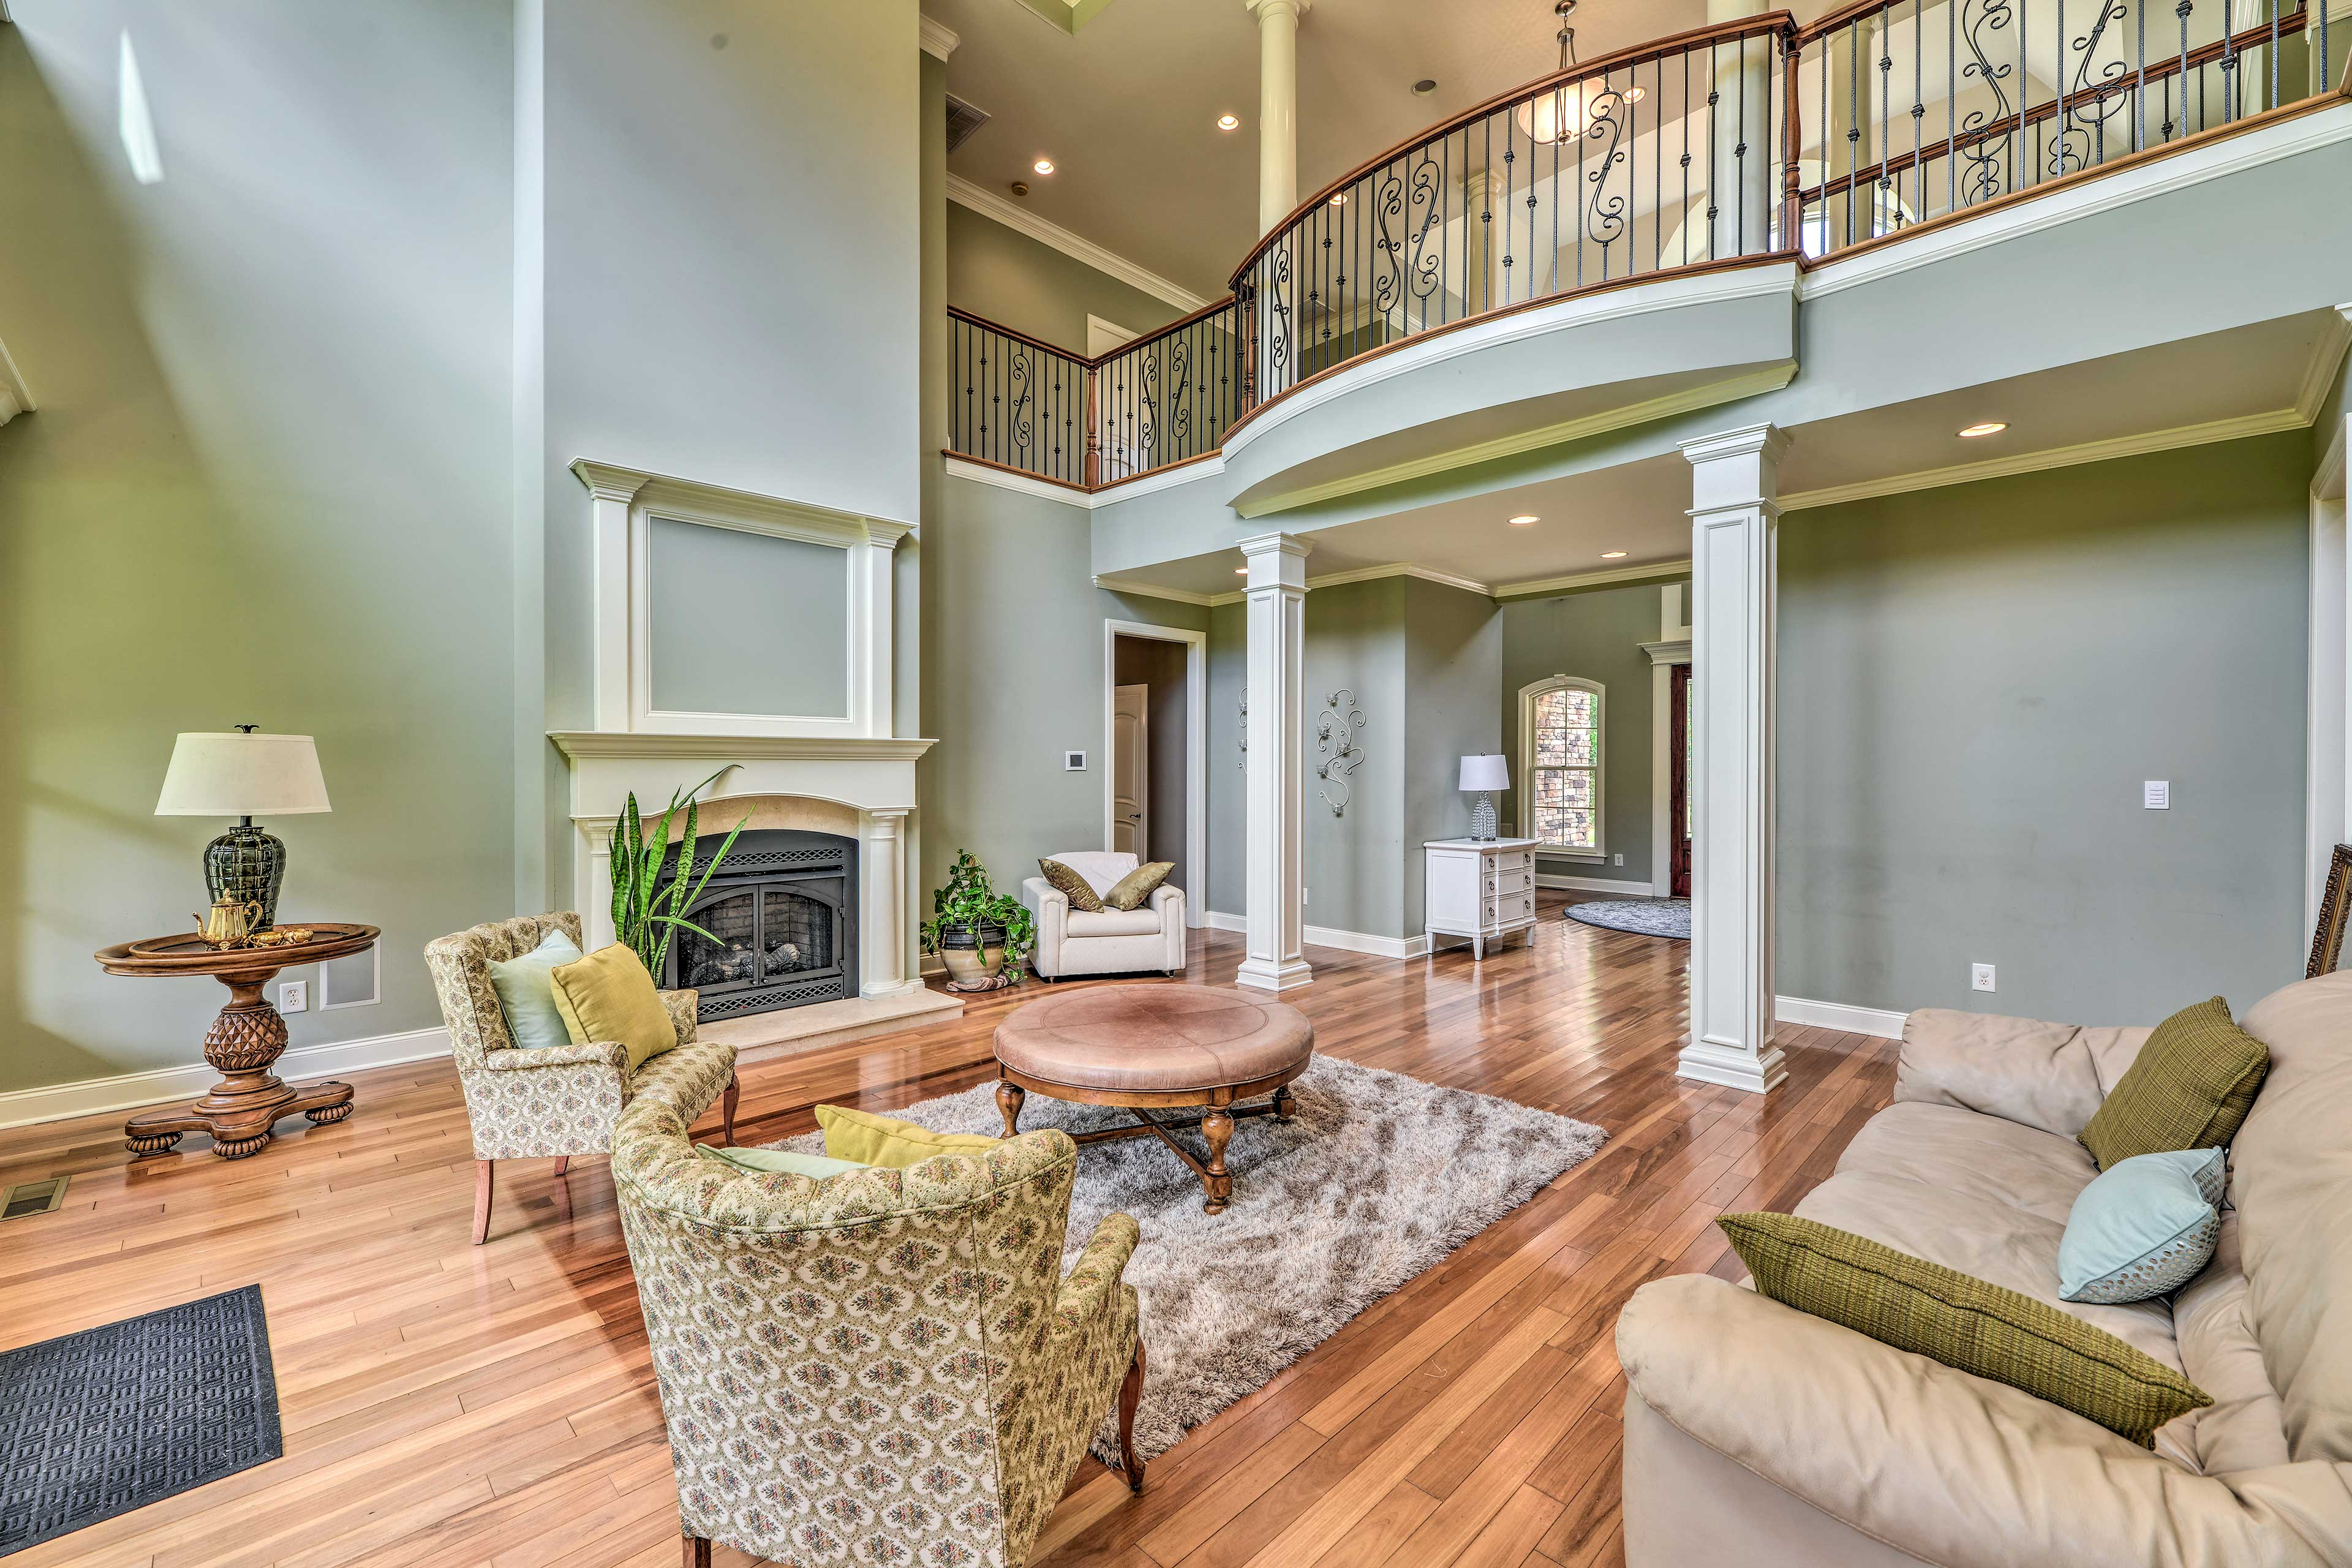 The formal sitting room features  plenty of places to relax and a fireplace.